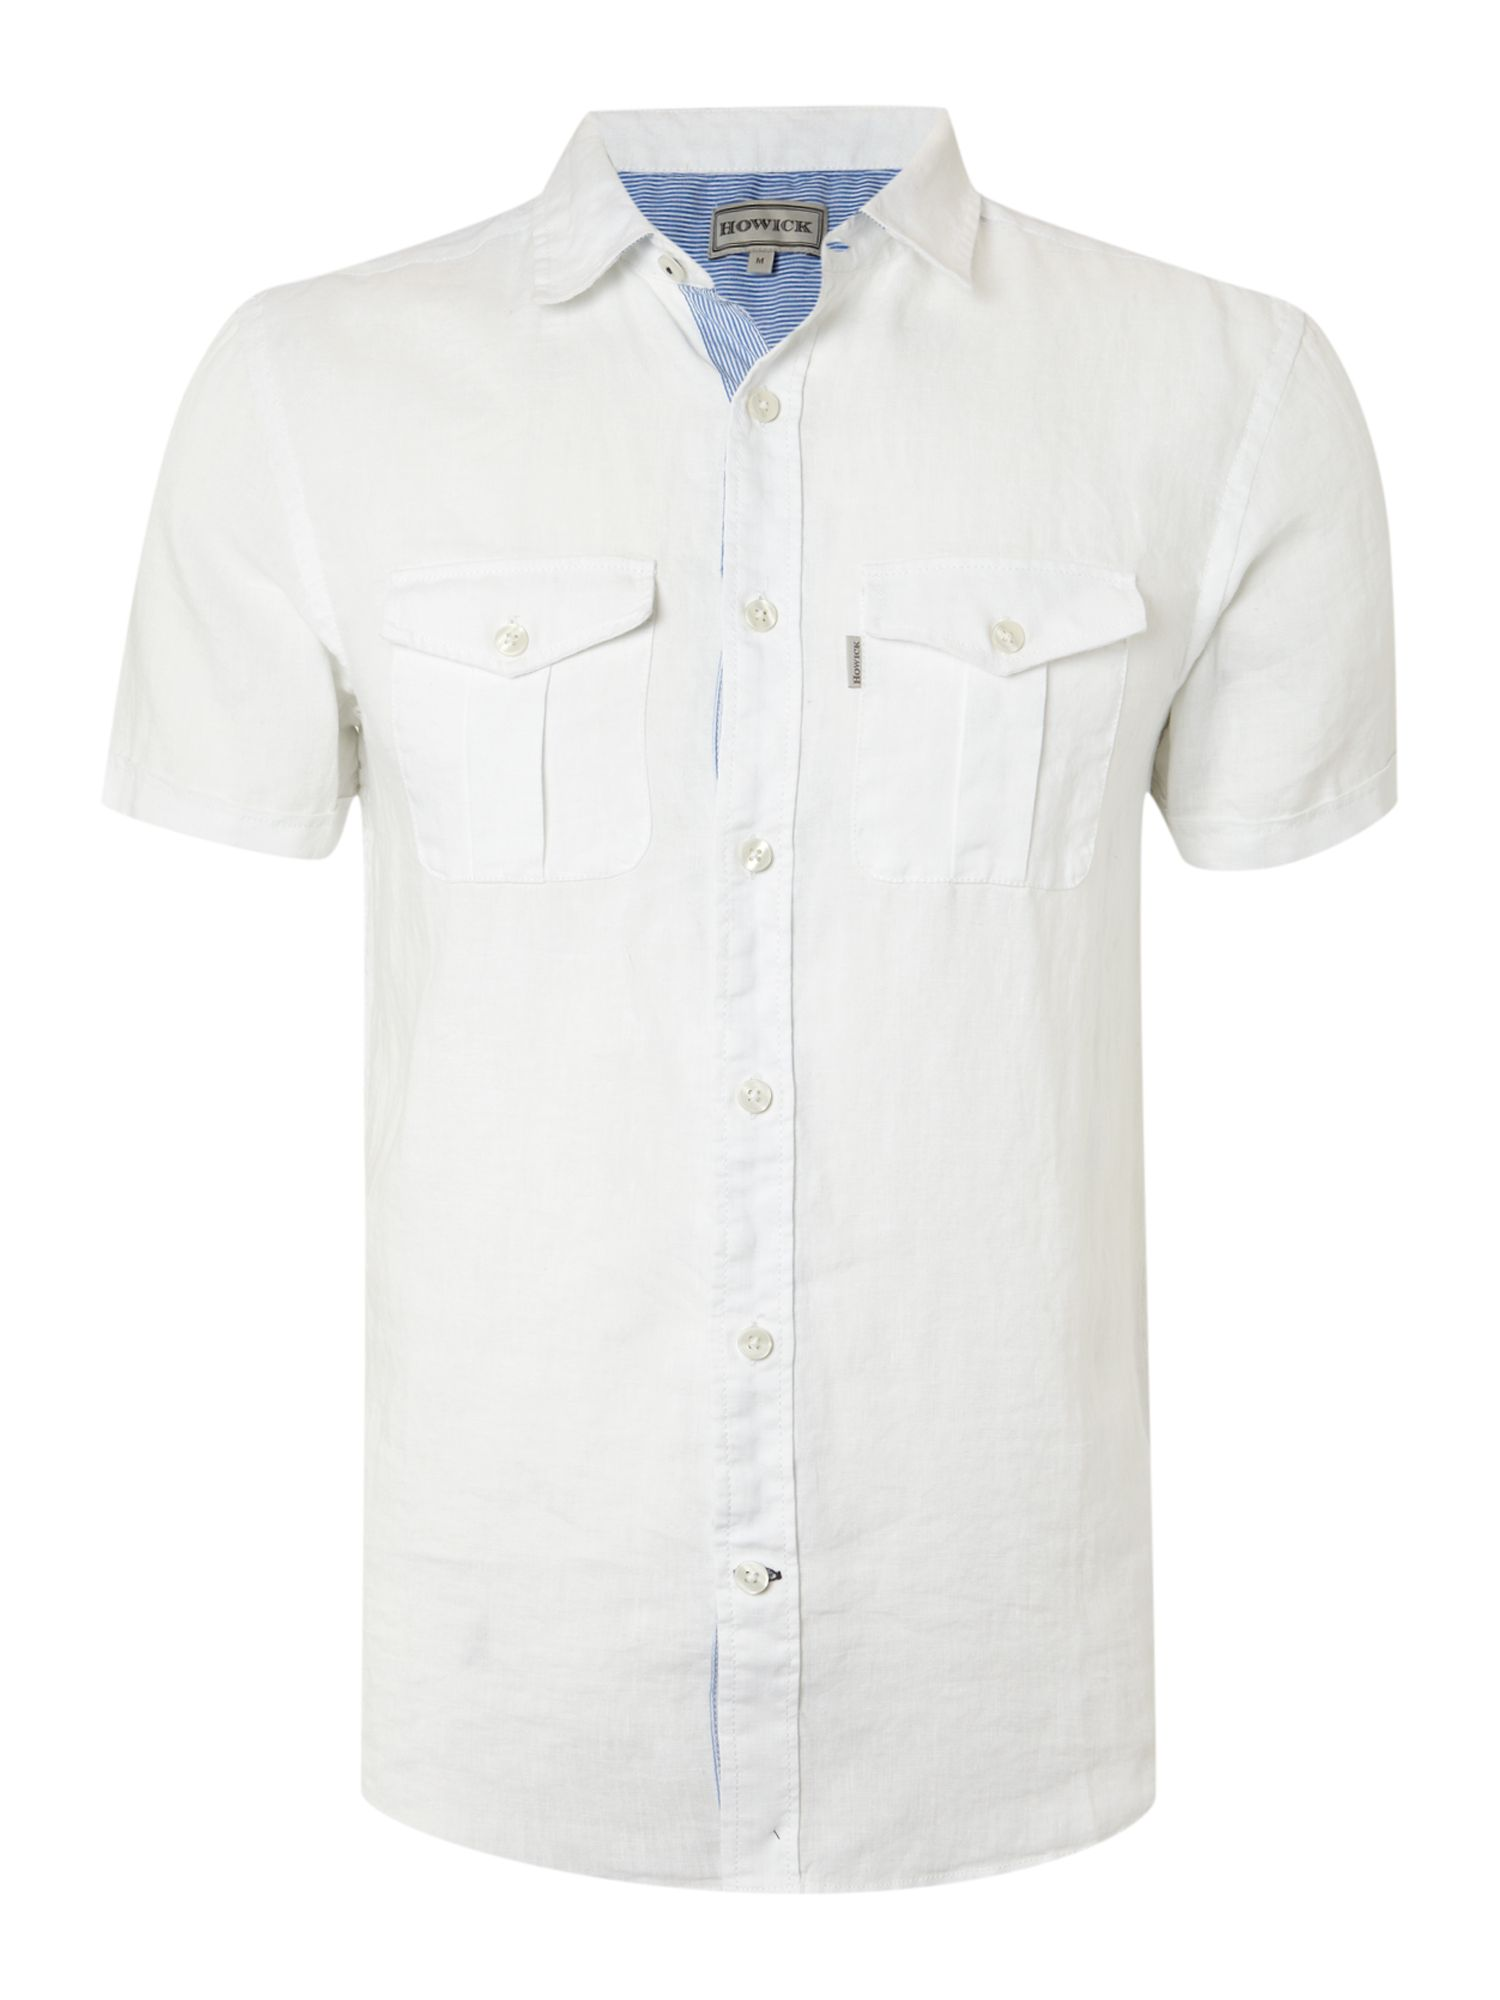 Short sleeved two pocket plain linen shirt